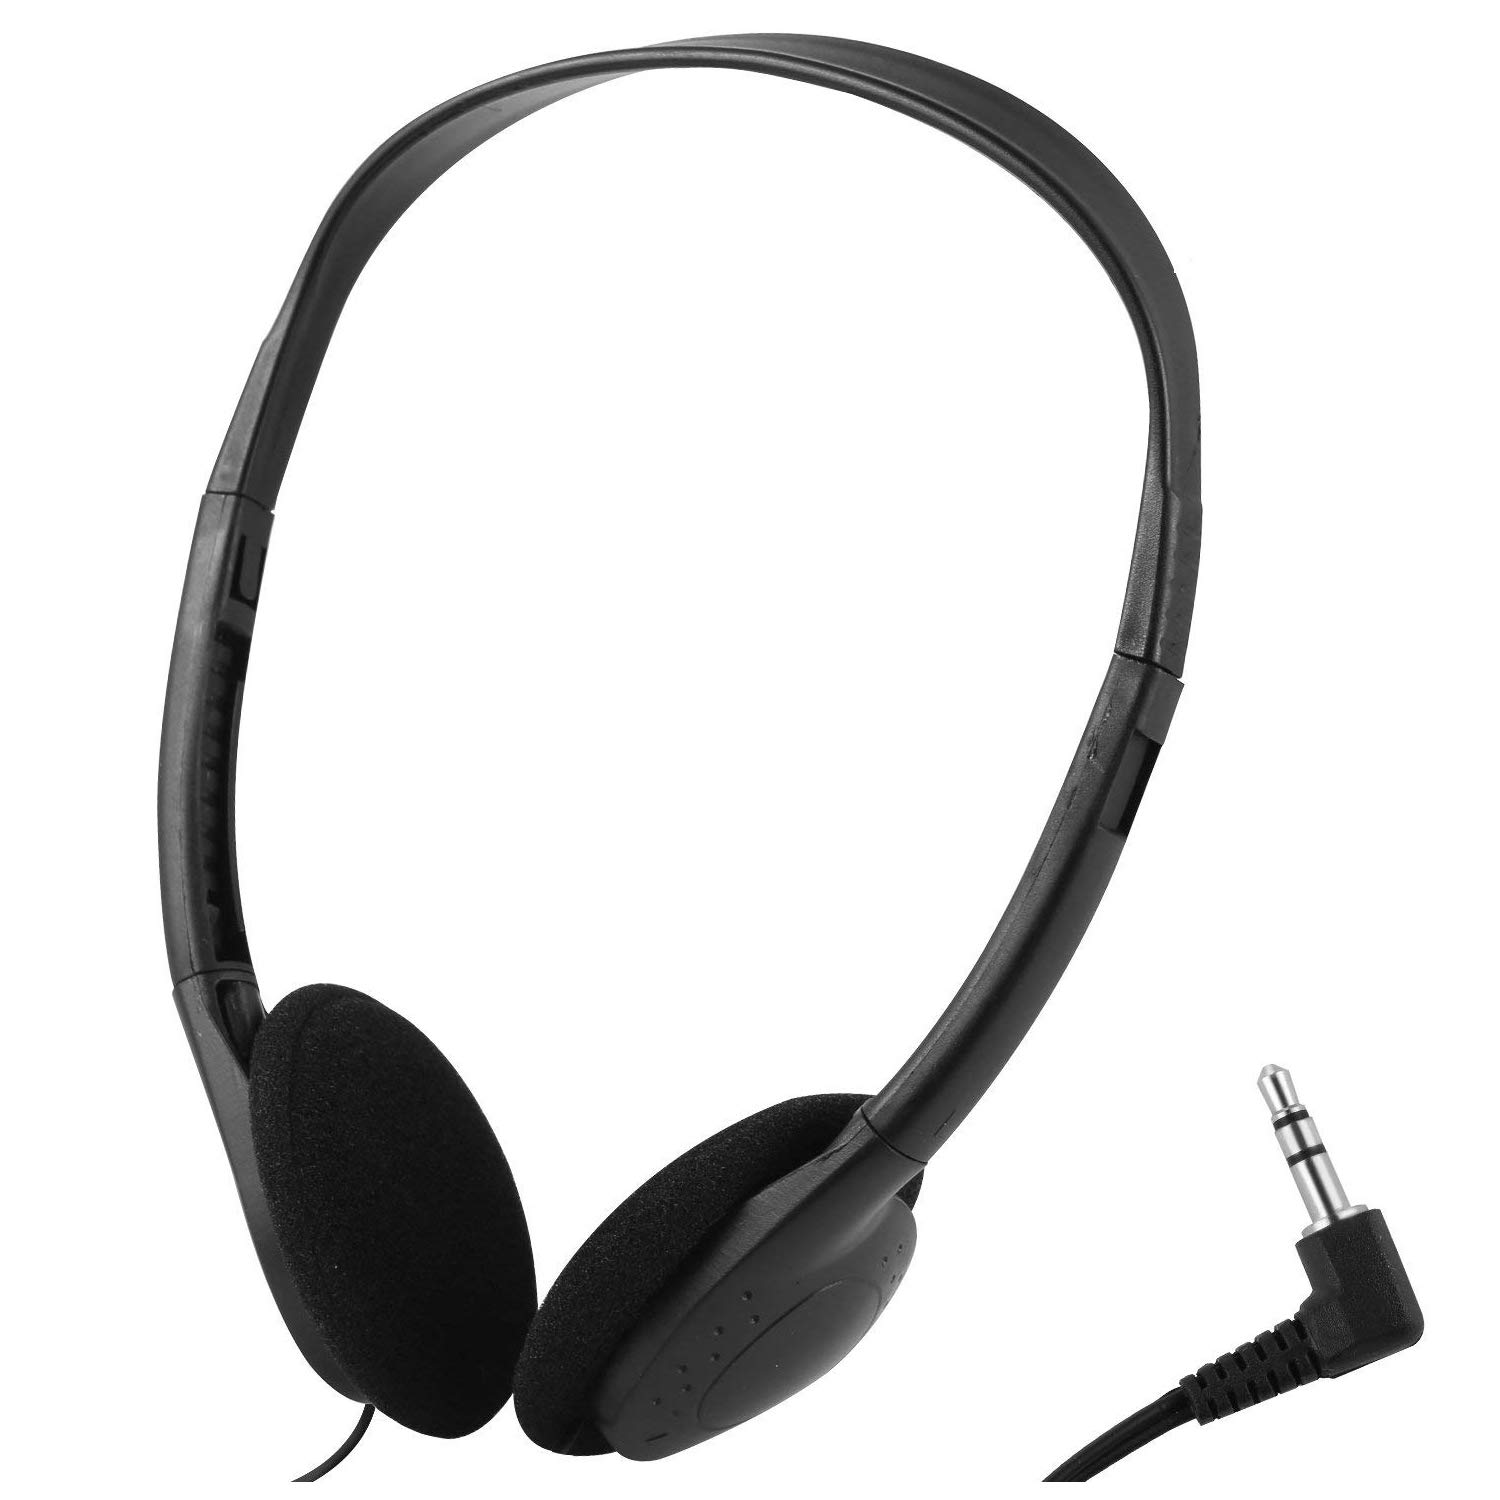 Wholesale Over The Head Low Cost Headphones in Bulk for Classroom, Airplane, Hospiital, Students,Kids and Adults -25Pack Individually Bagged Black by ZLHJXY